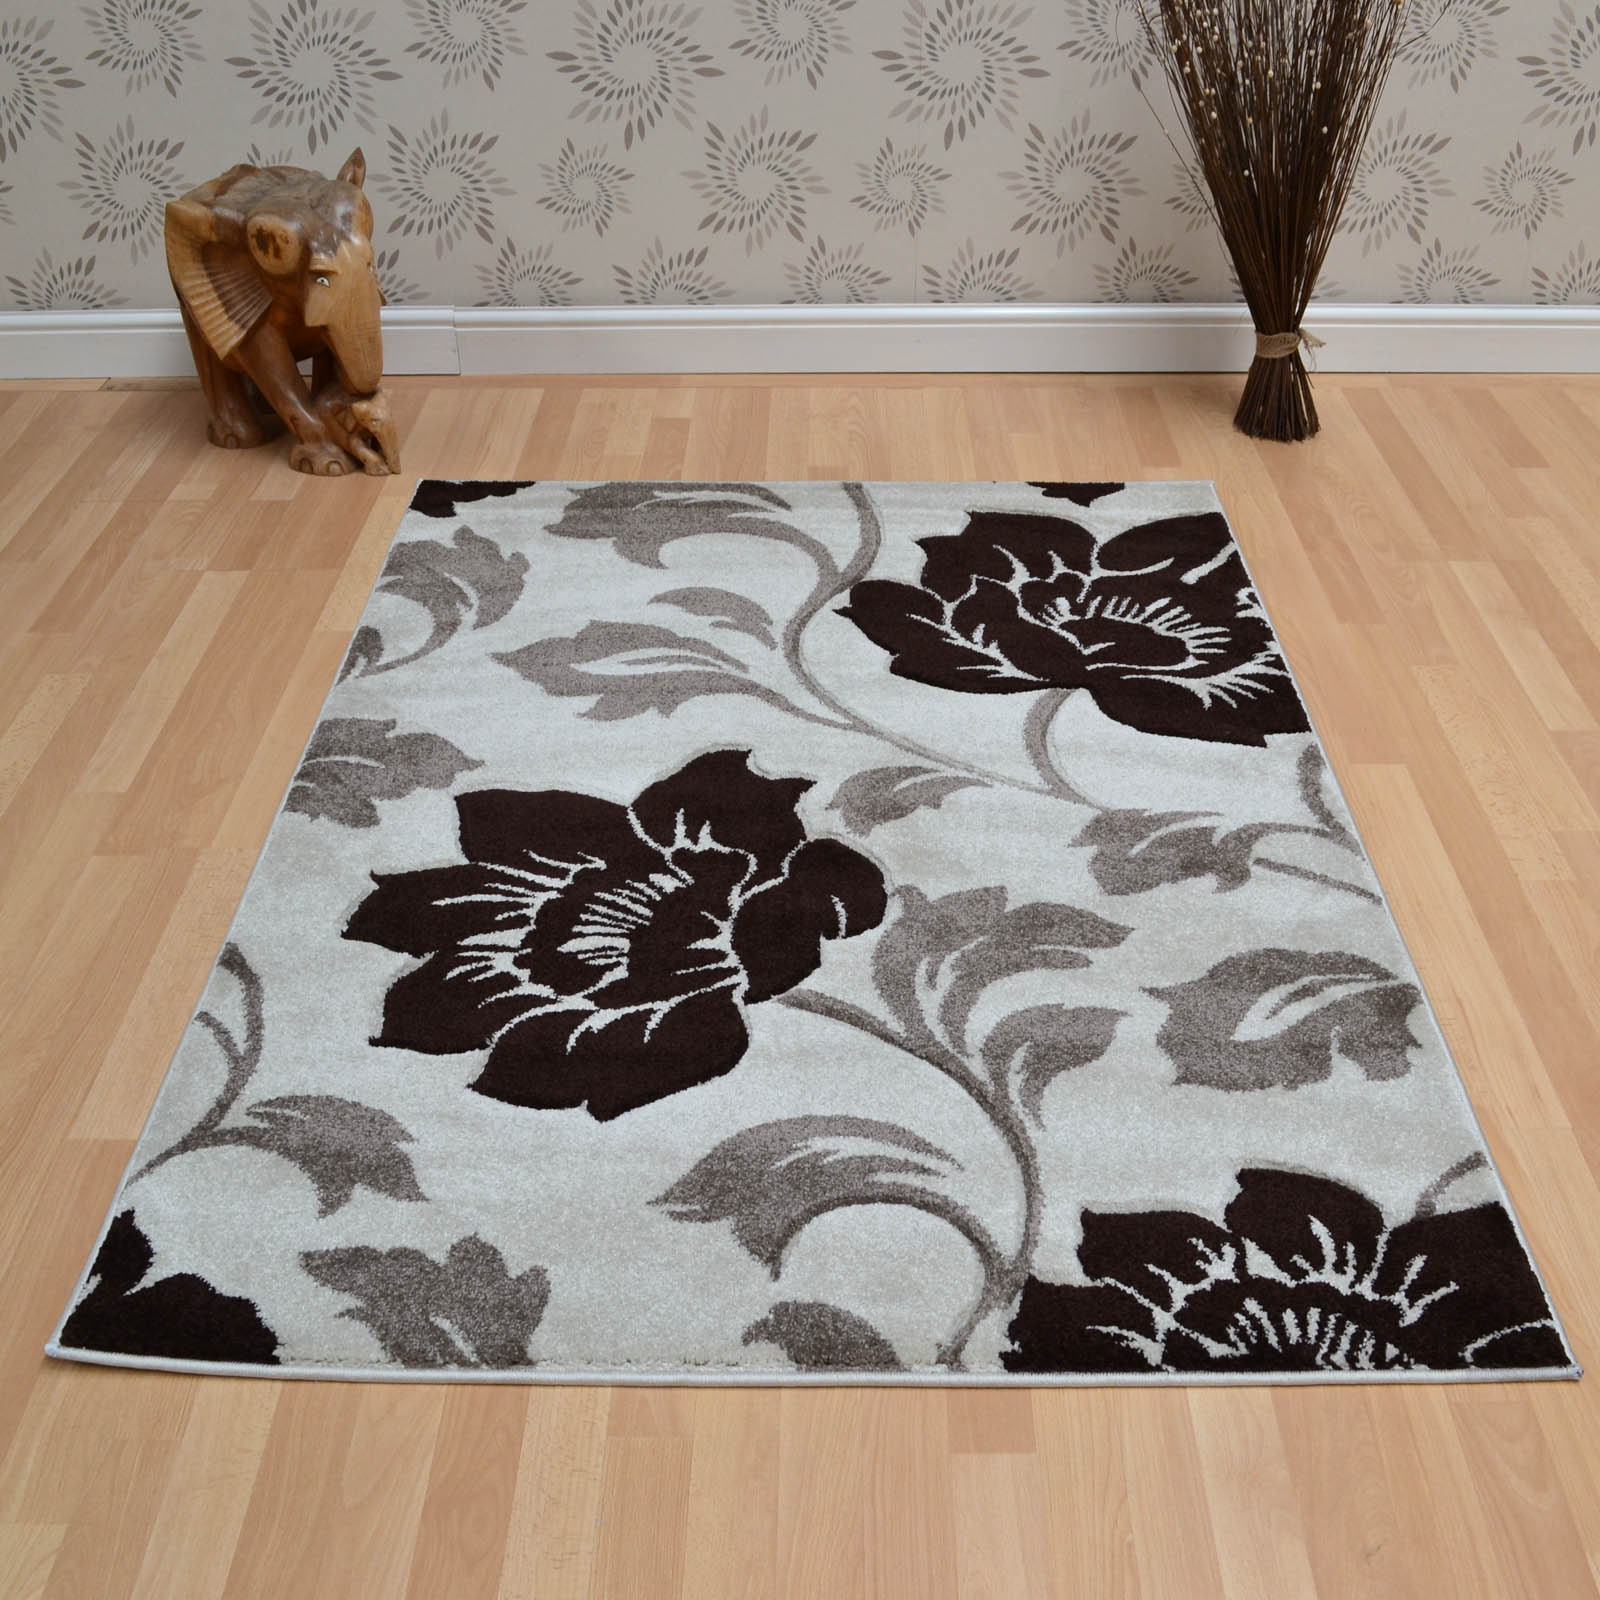 Vogue Floral Rugs VG31 in Beige and Brown